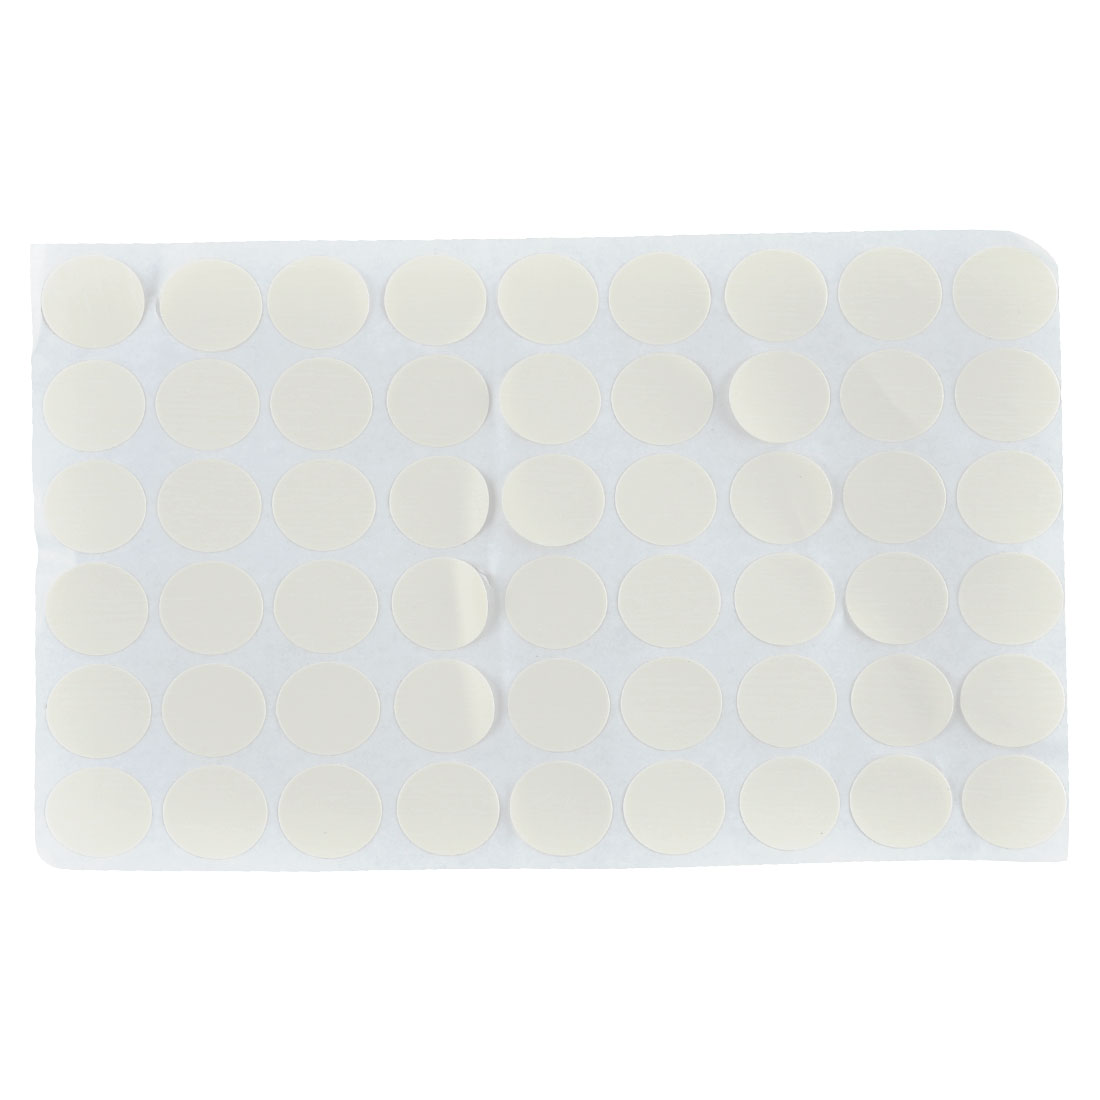 Home Furniture Self-adhesive Screw Hole Stickers Covers Sheet Beige 54 in 1